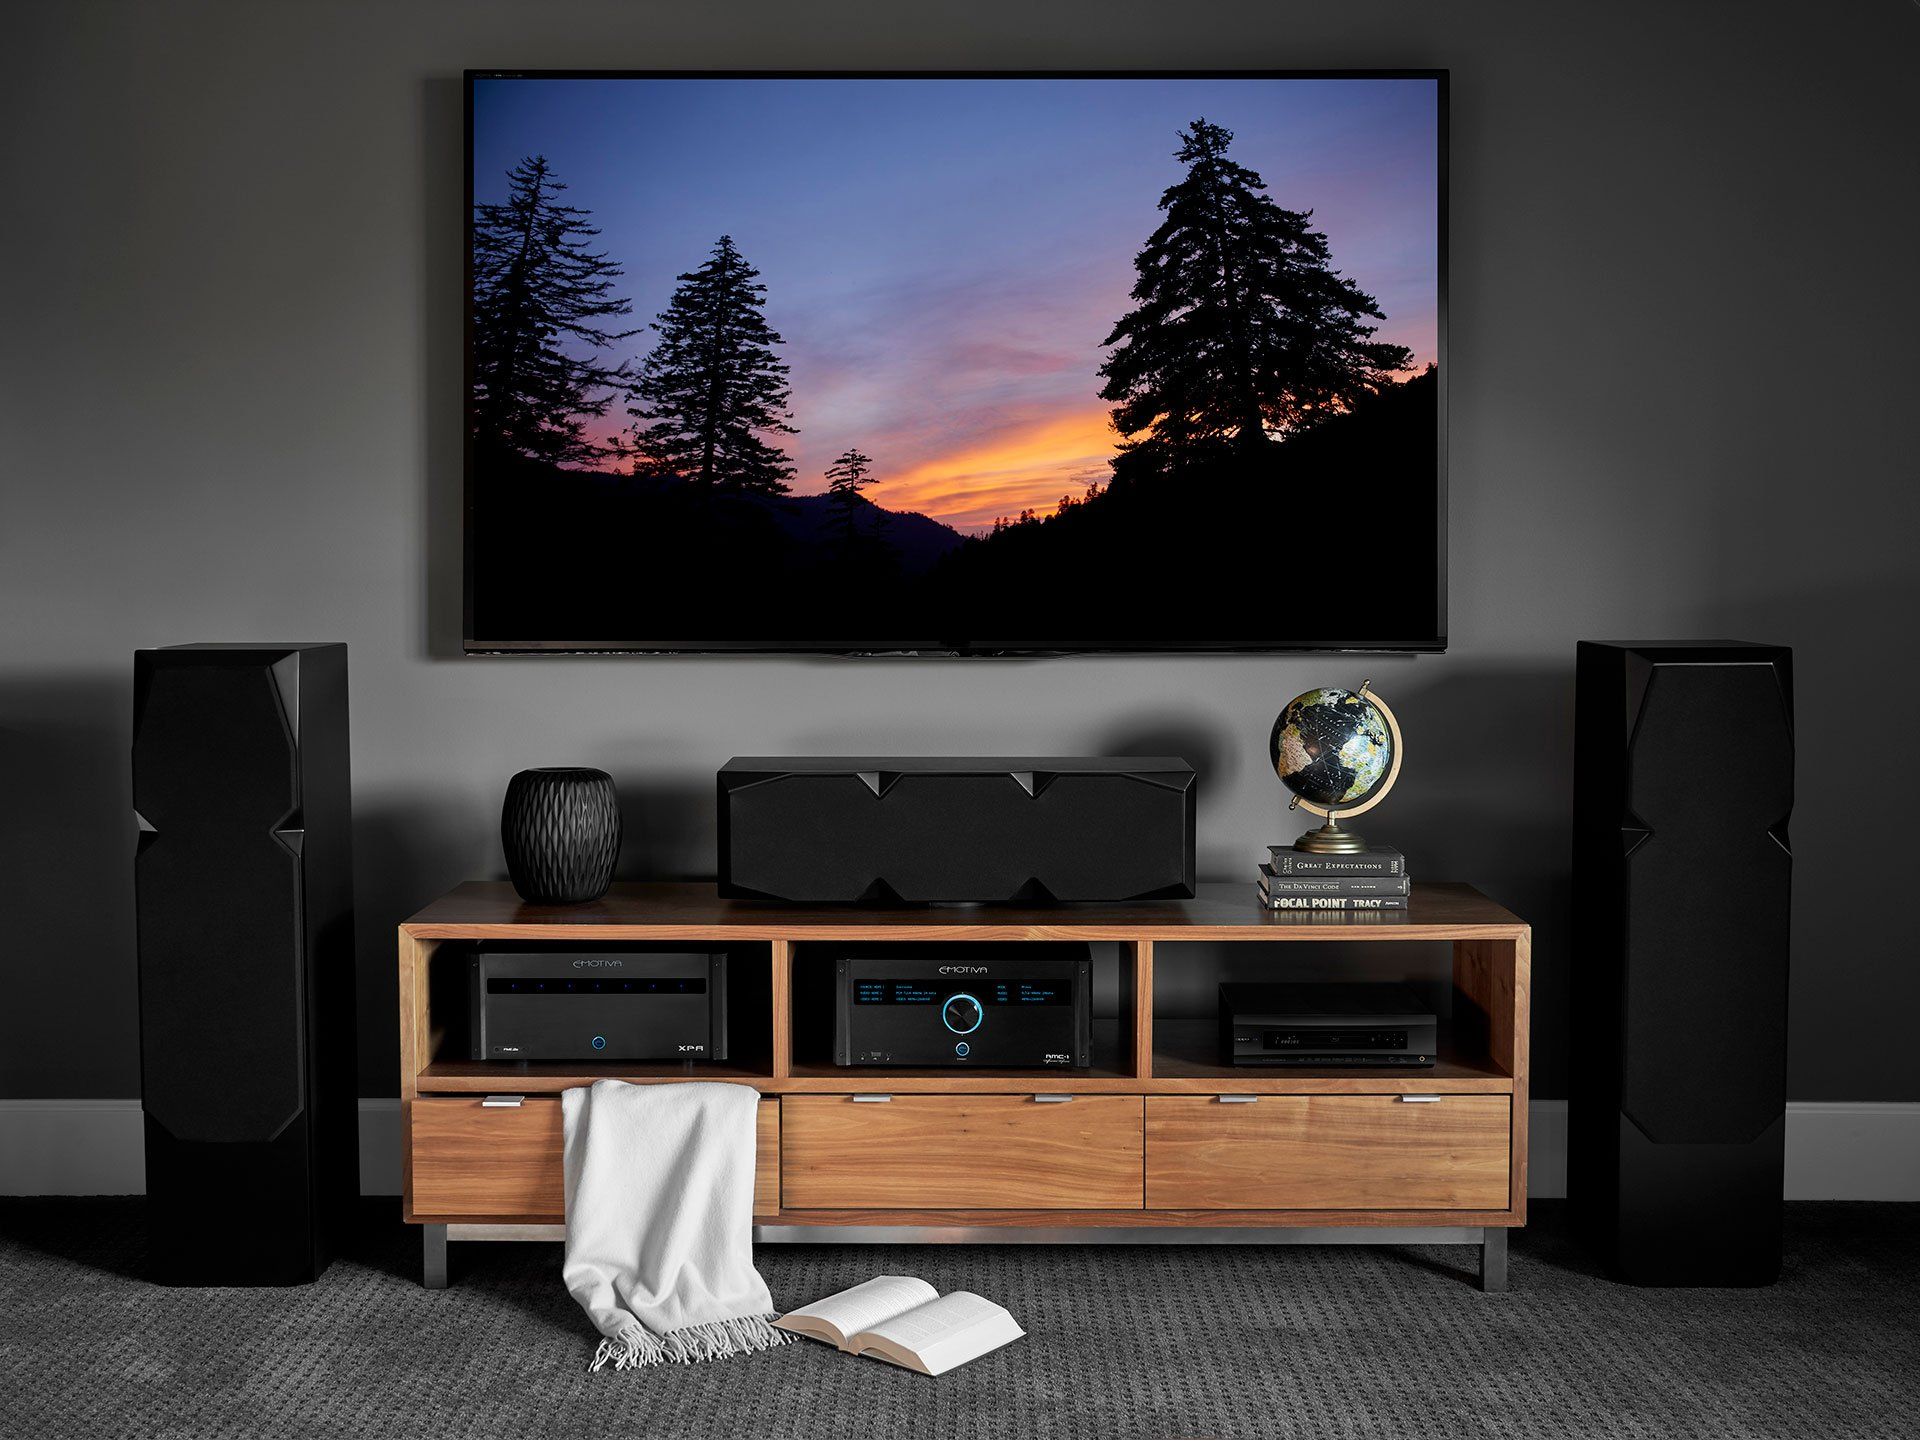 Home Theater Series